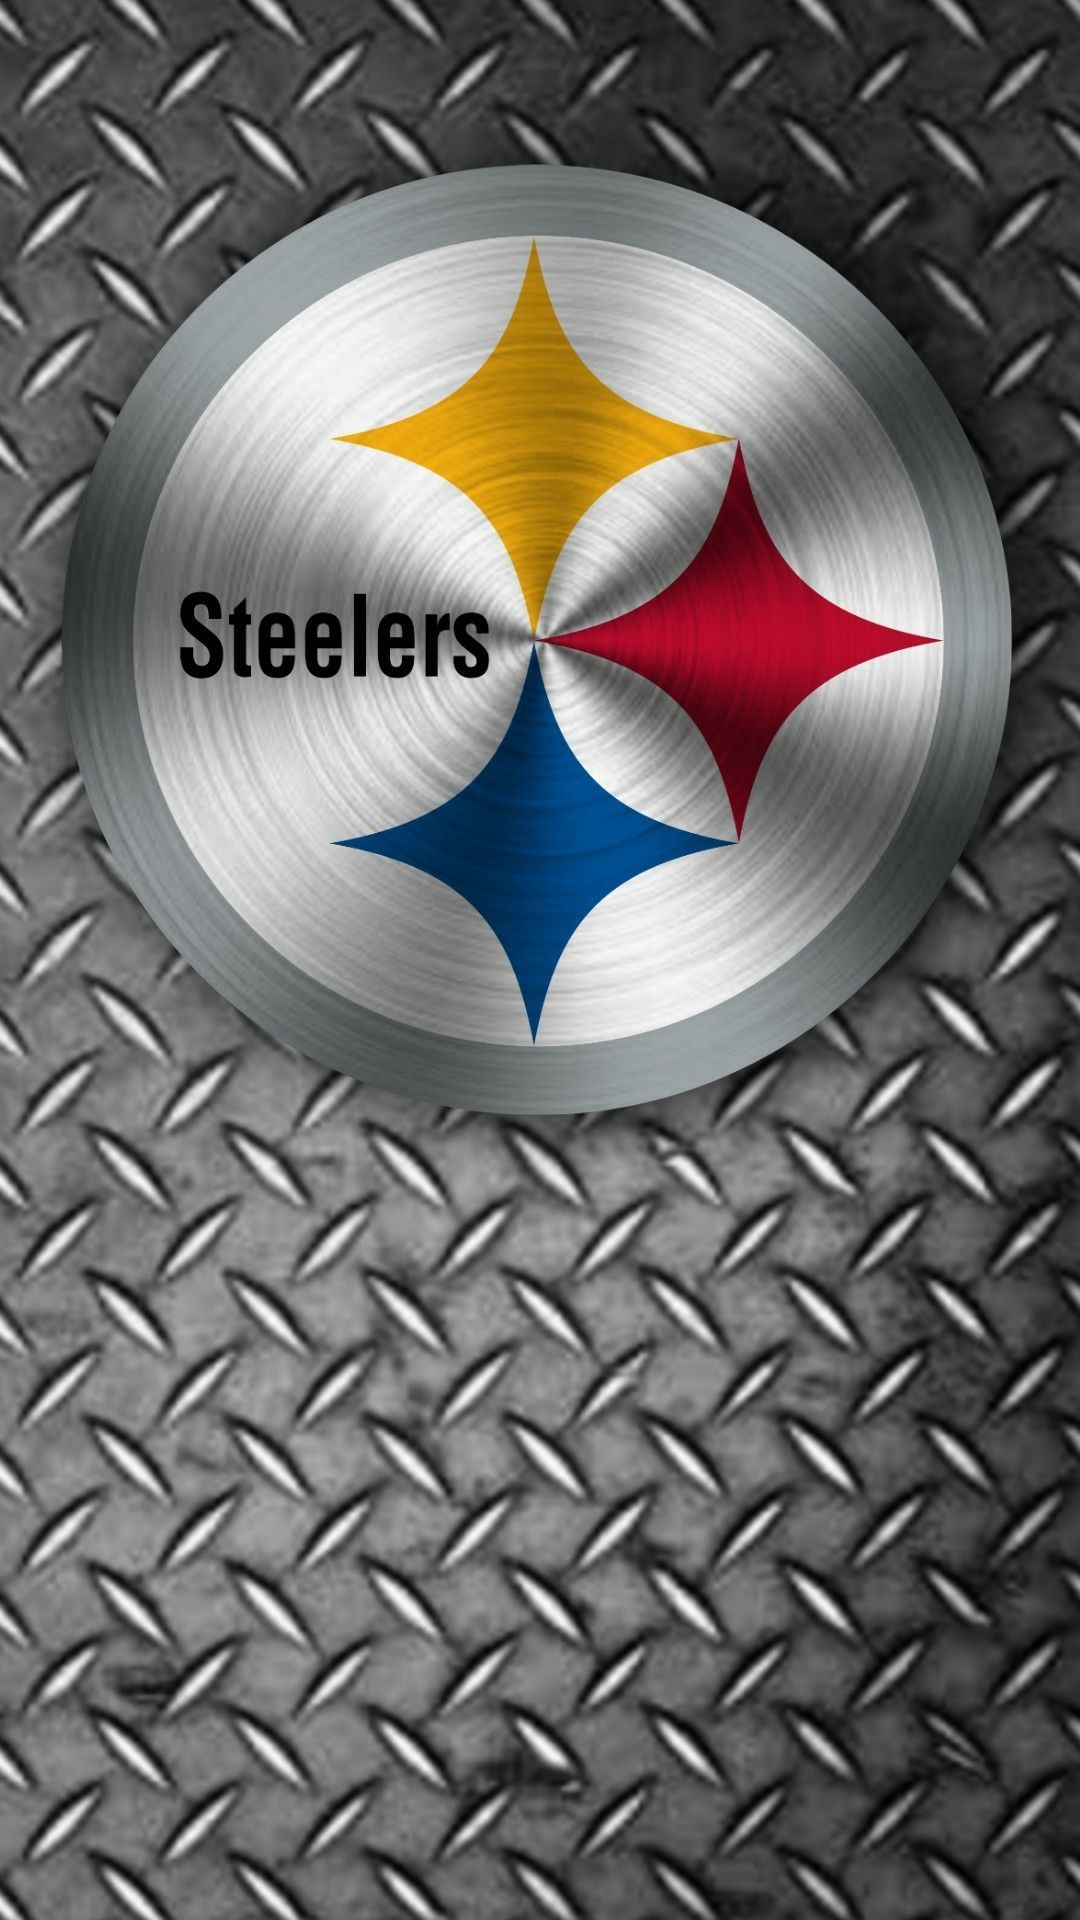 Steelers Wallpaper Hd in 2020 Pittsburgh steelers